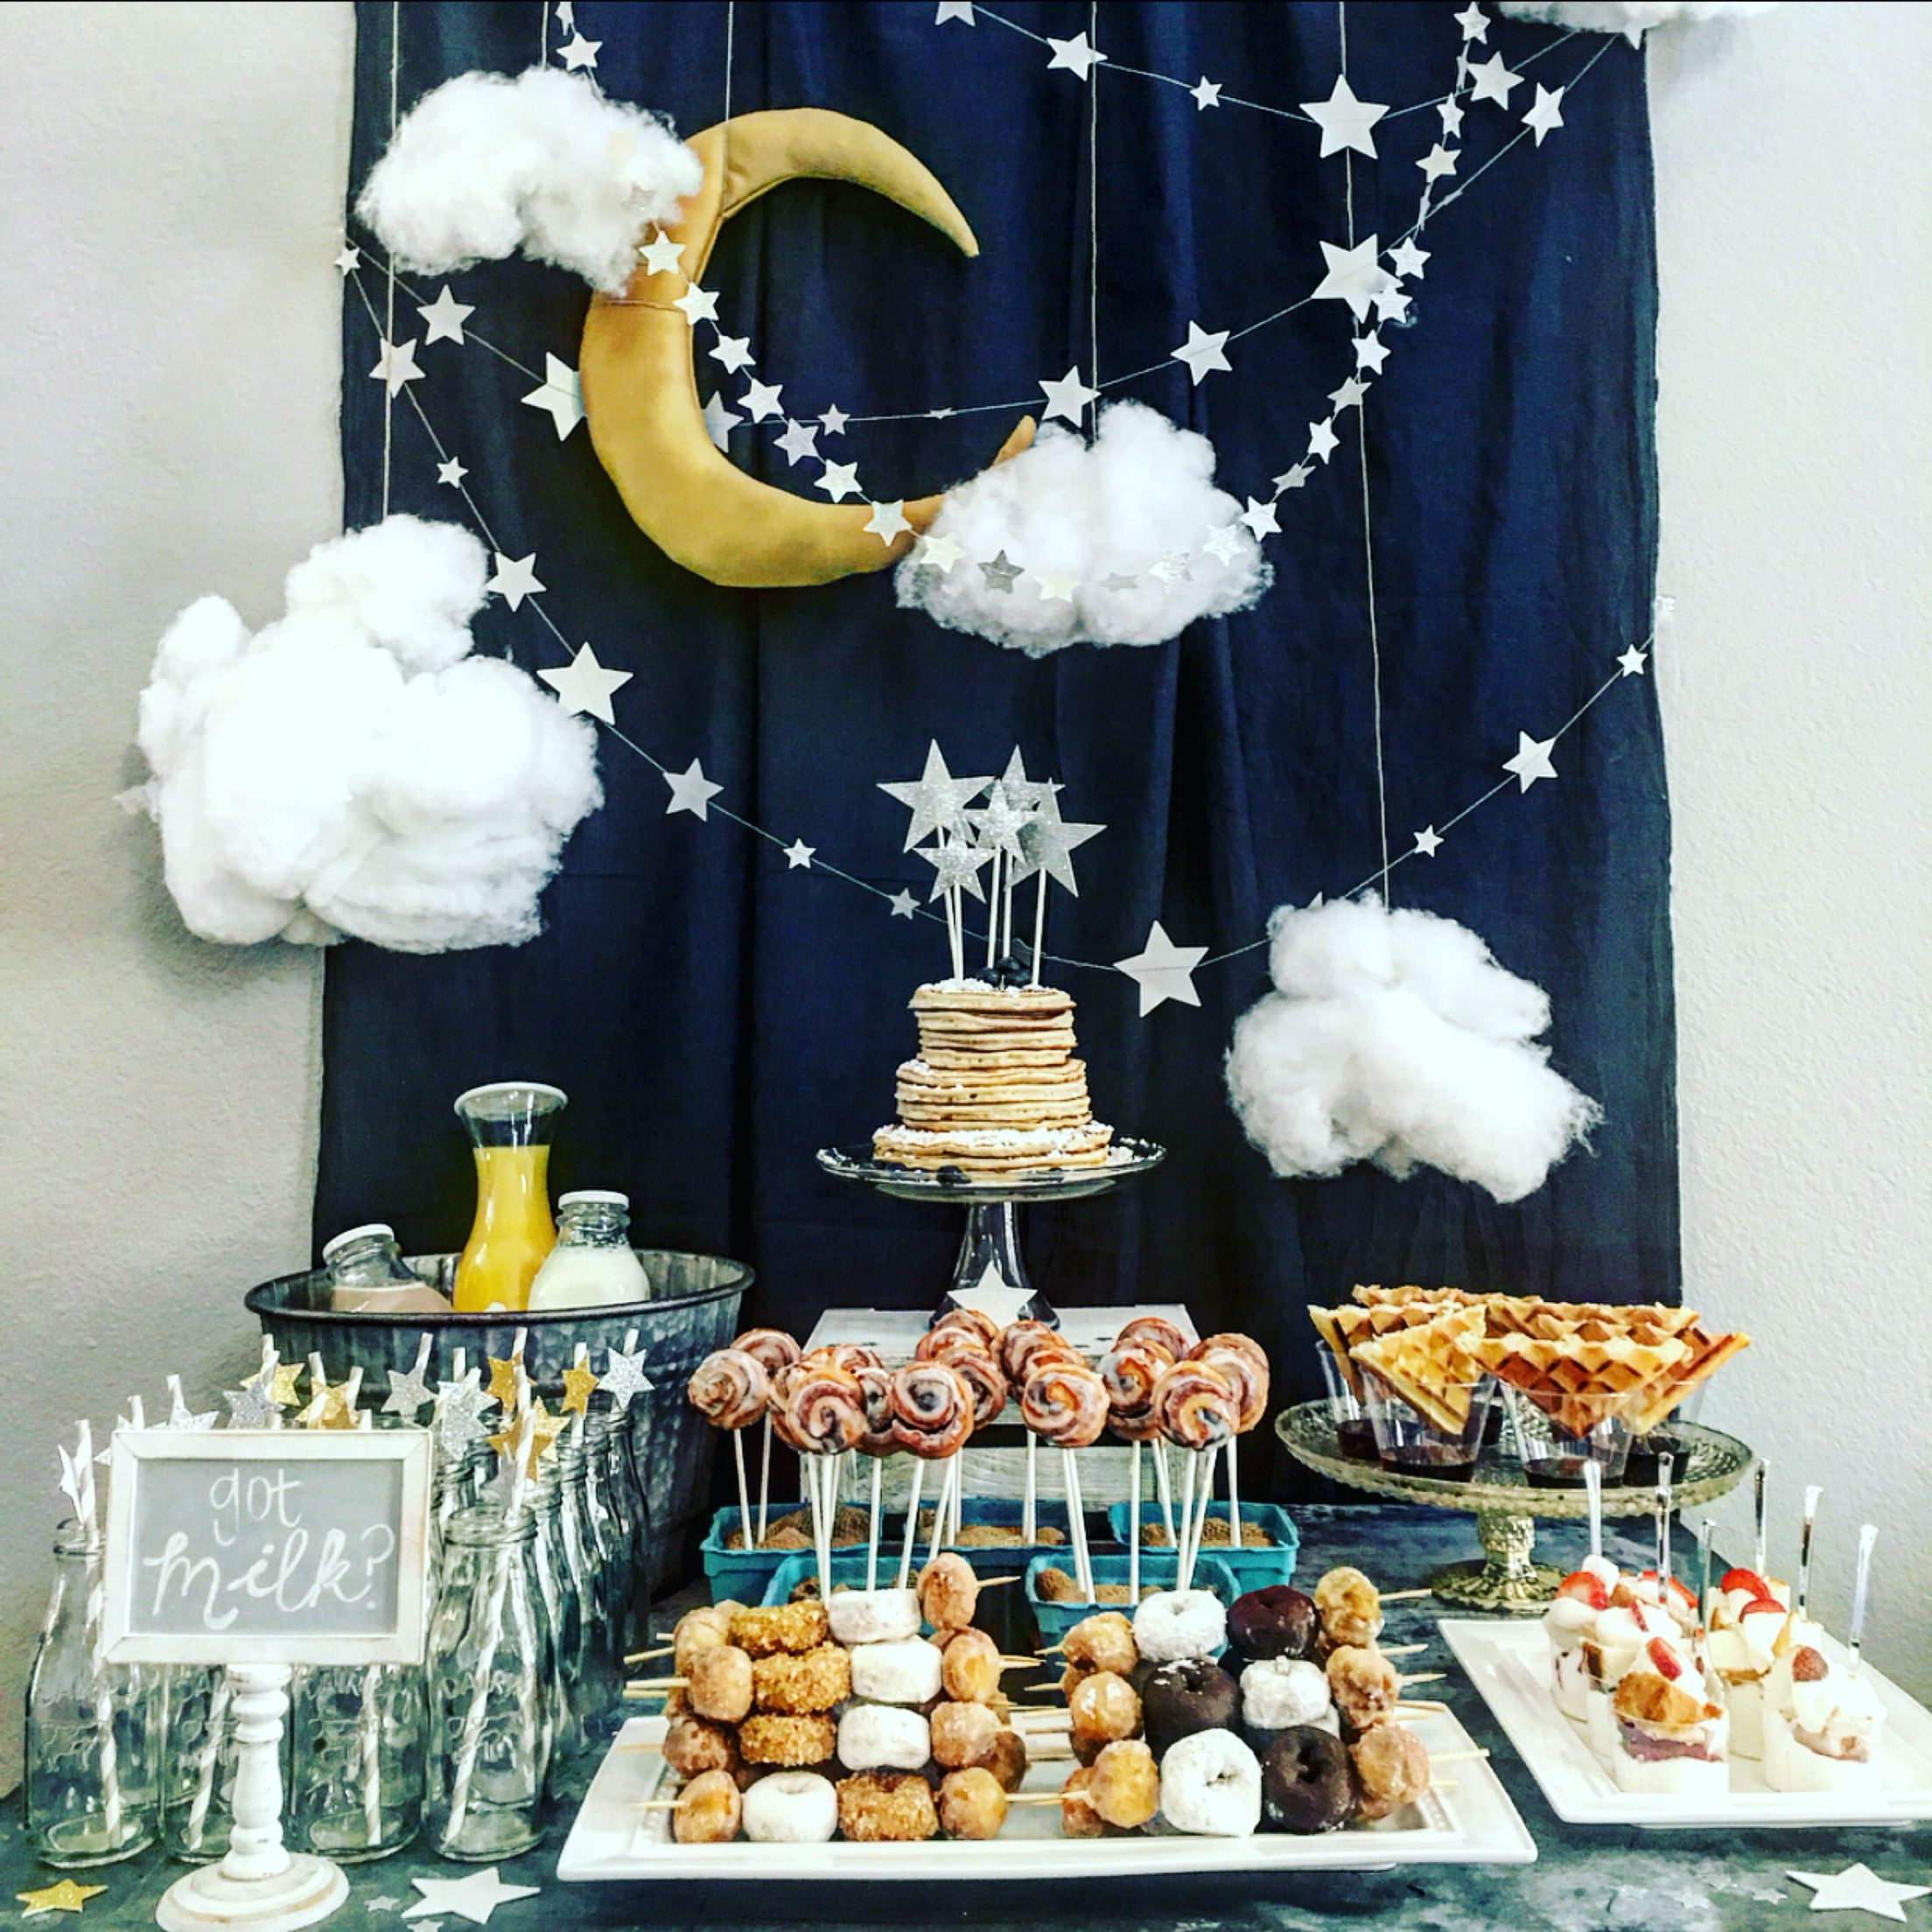 Baby Shower Themes For Boy: Twinkle Twinkle Little Star Baby Shower. Baby Shower